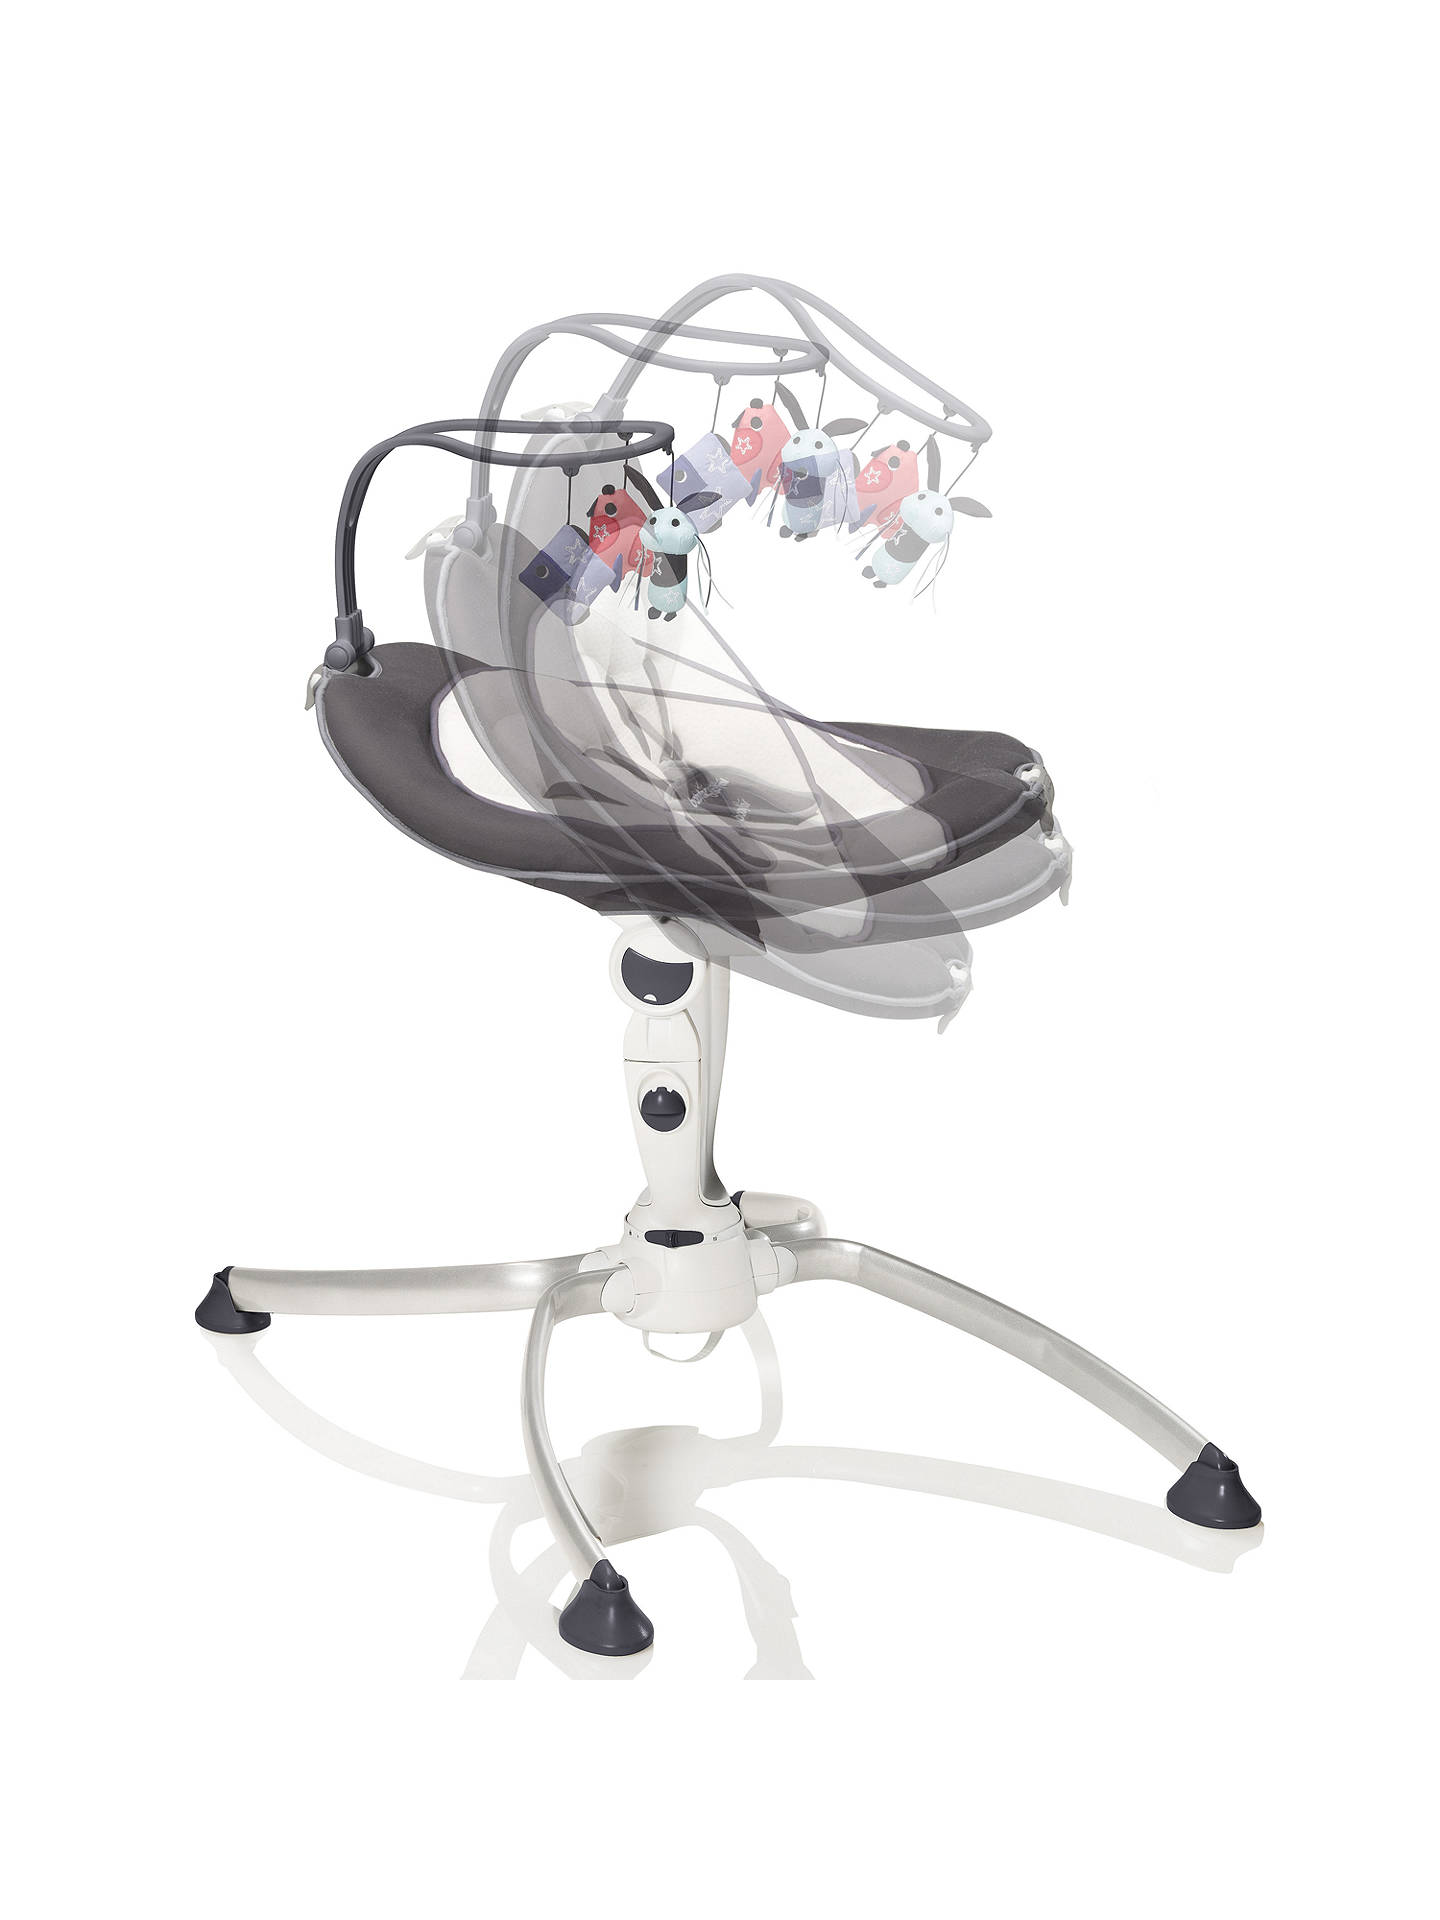 f51f40123 Babymoov Swoon Up Baby Bouncer